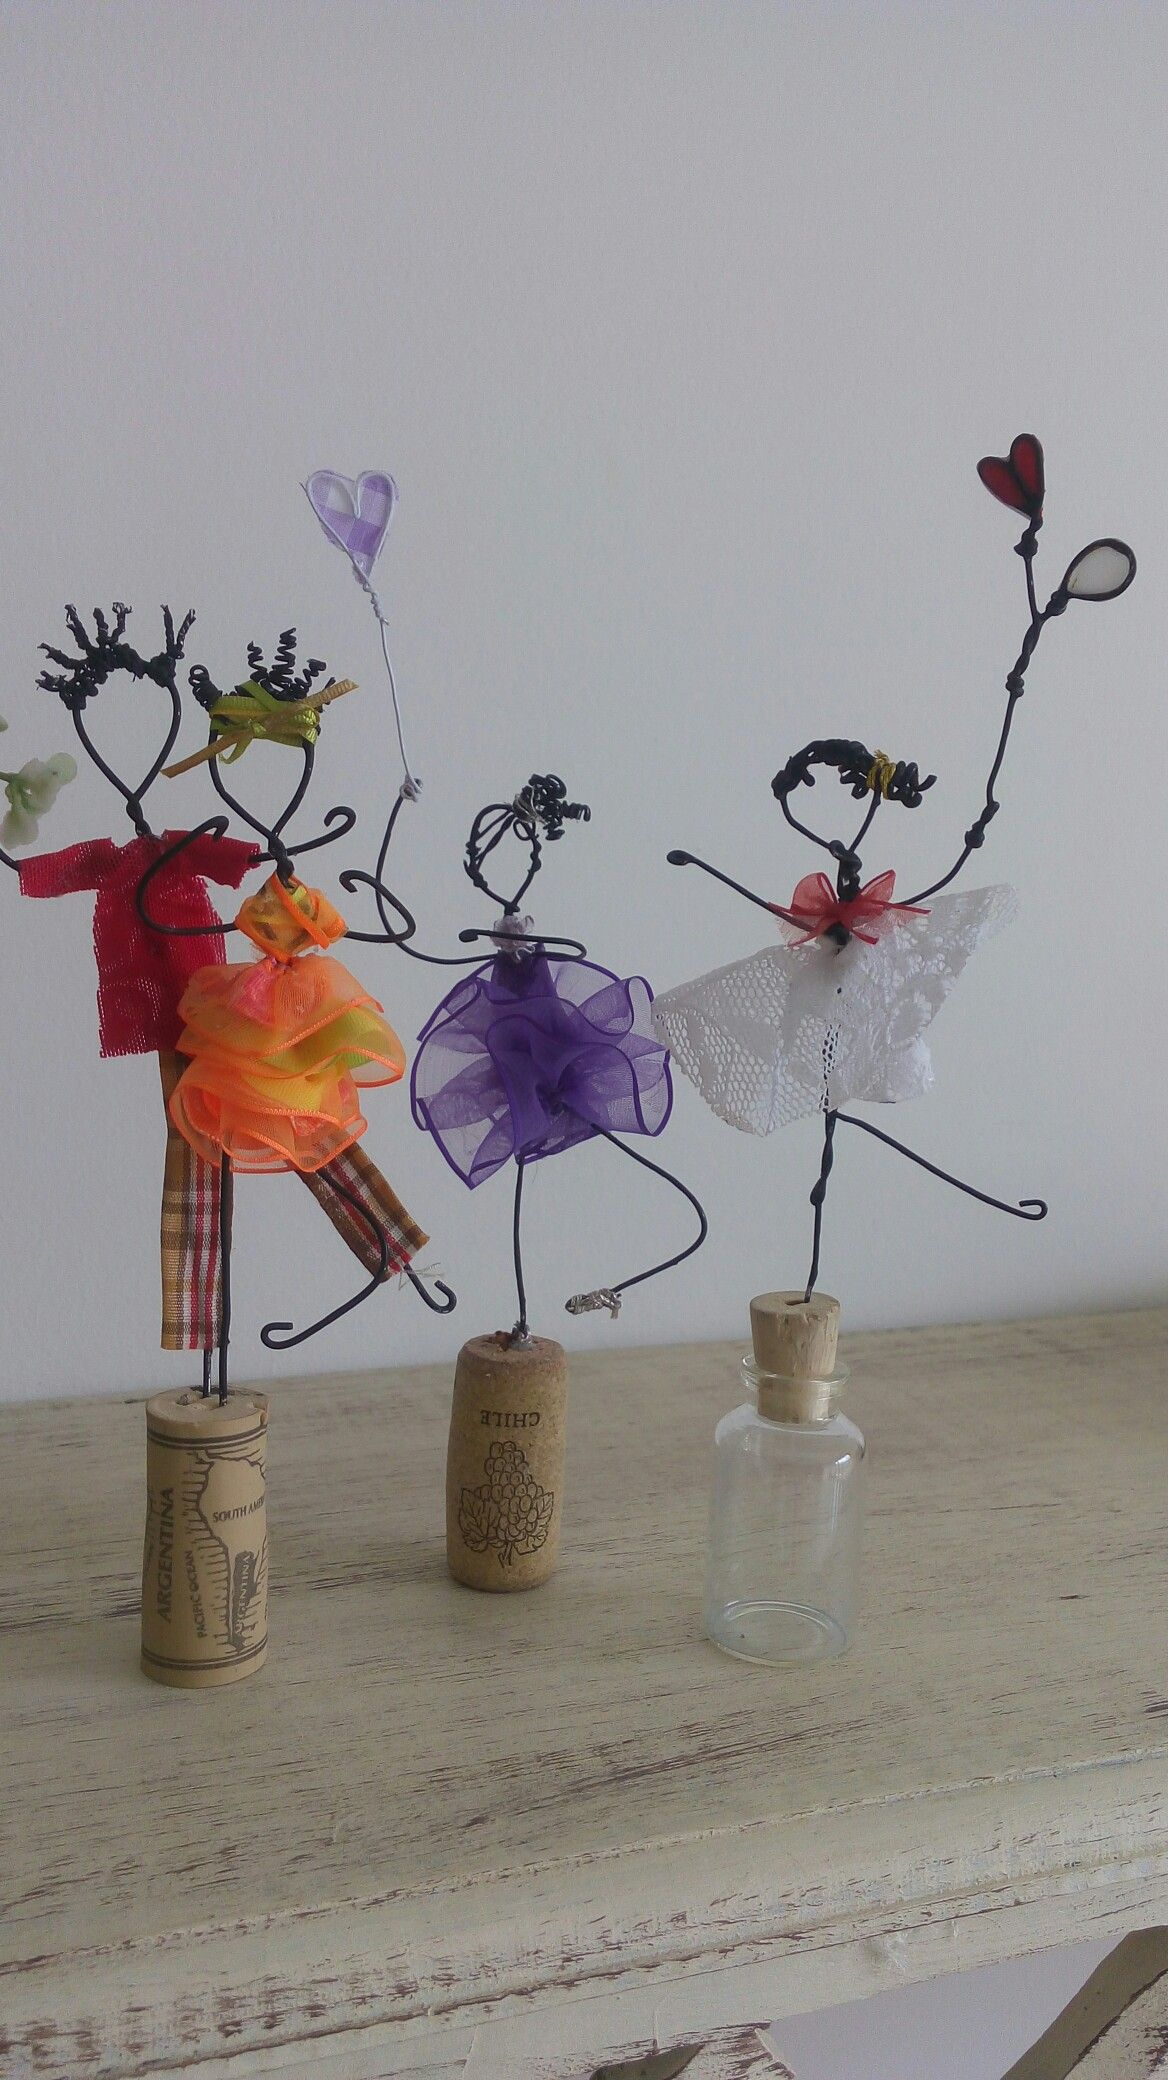 Pin by Sharron Tabelle on Gifts | Wire crafts, Wire Art, Crafts for kids